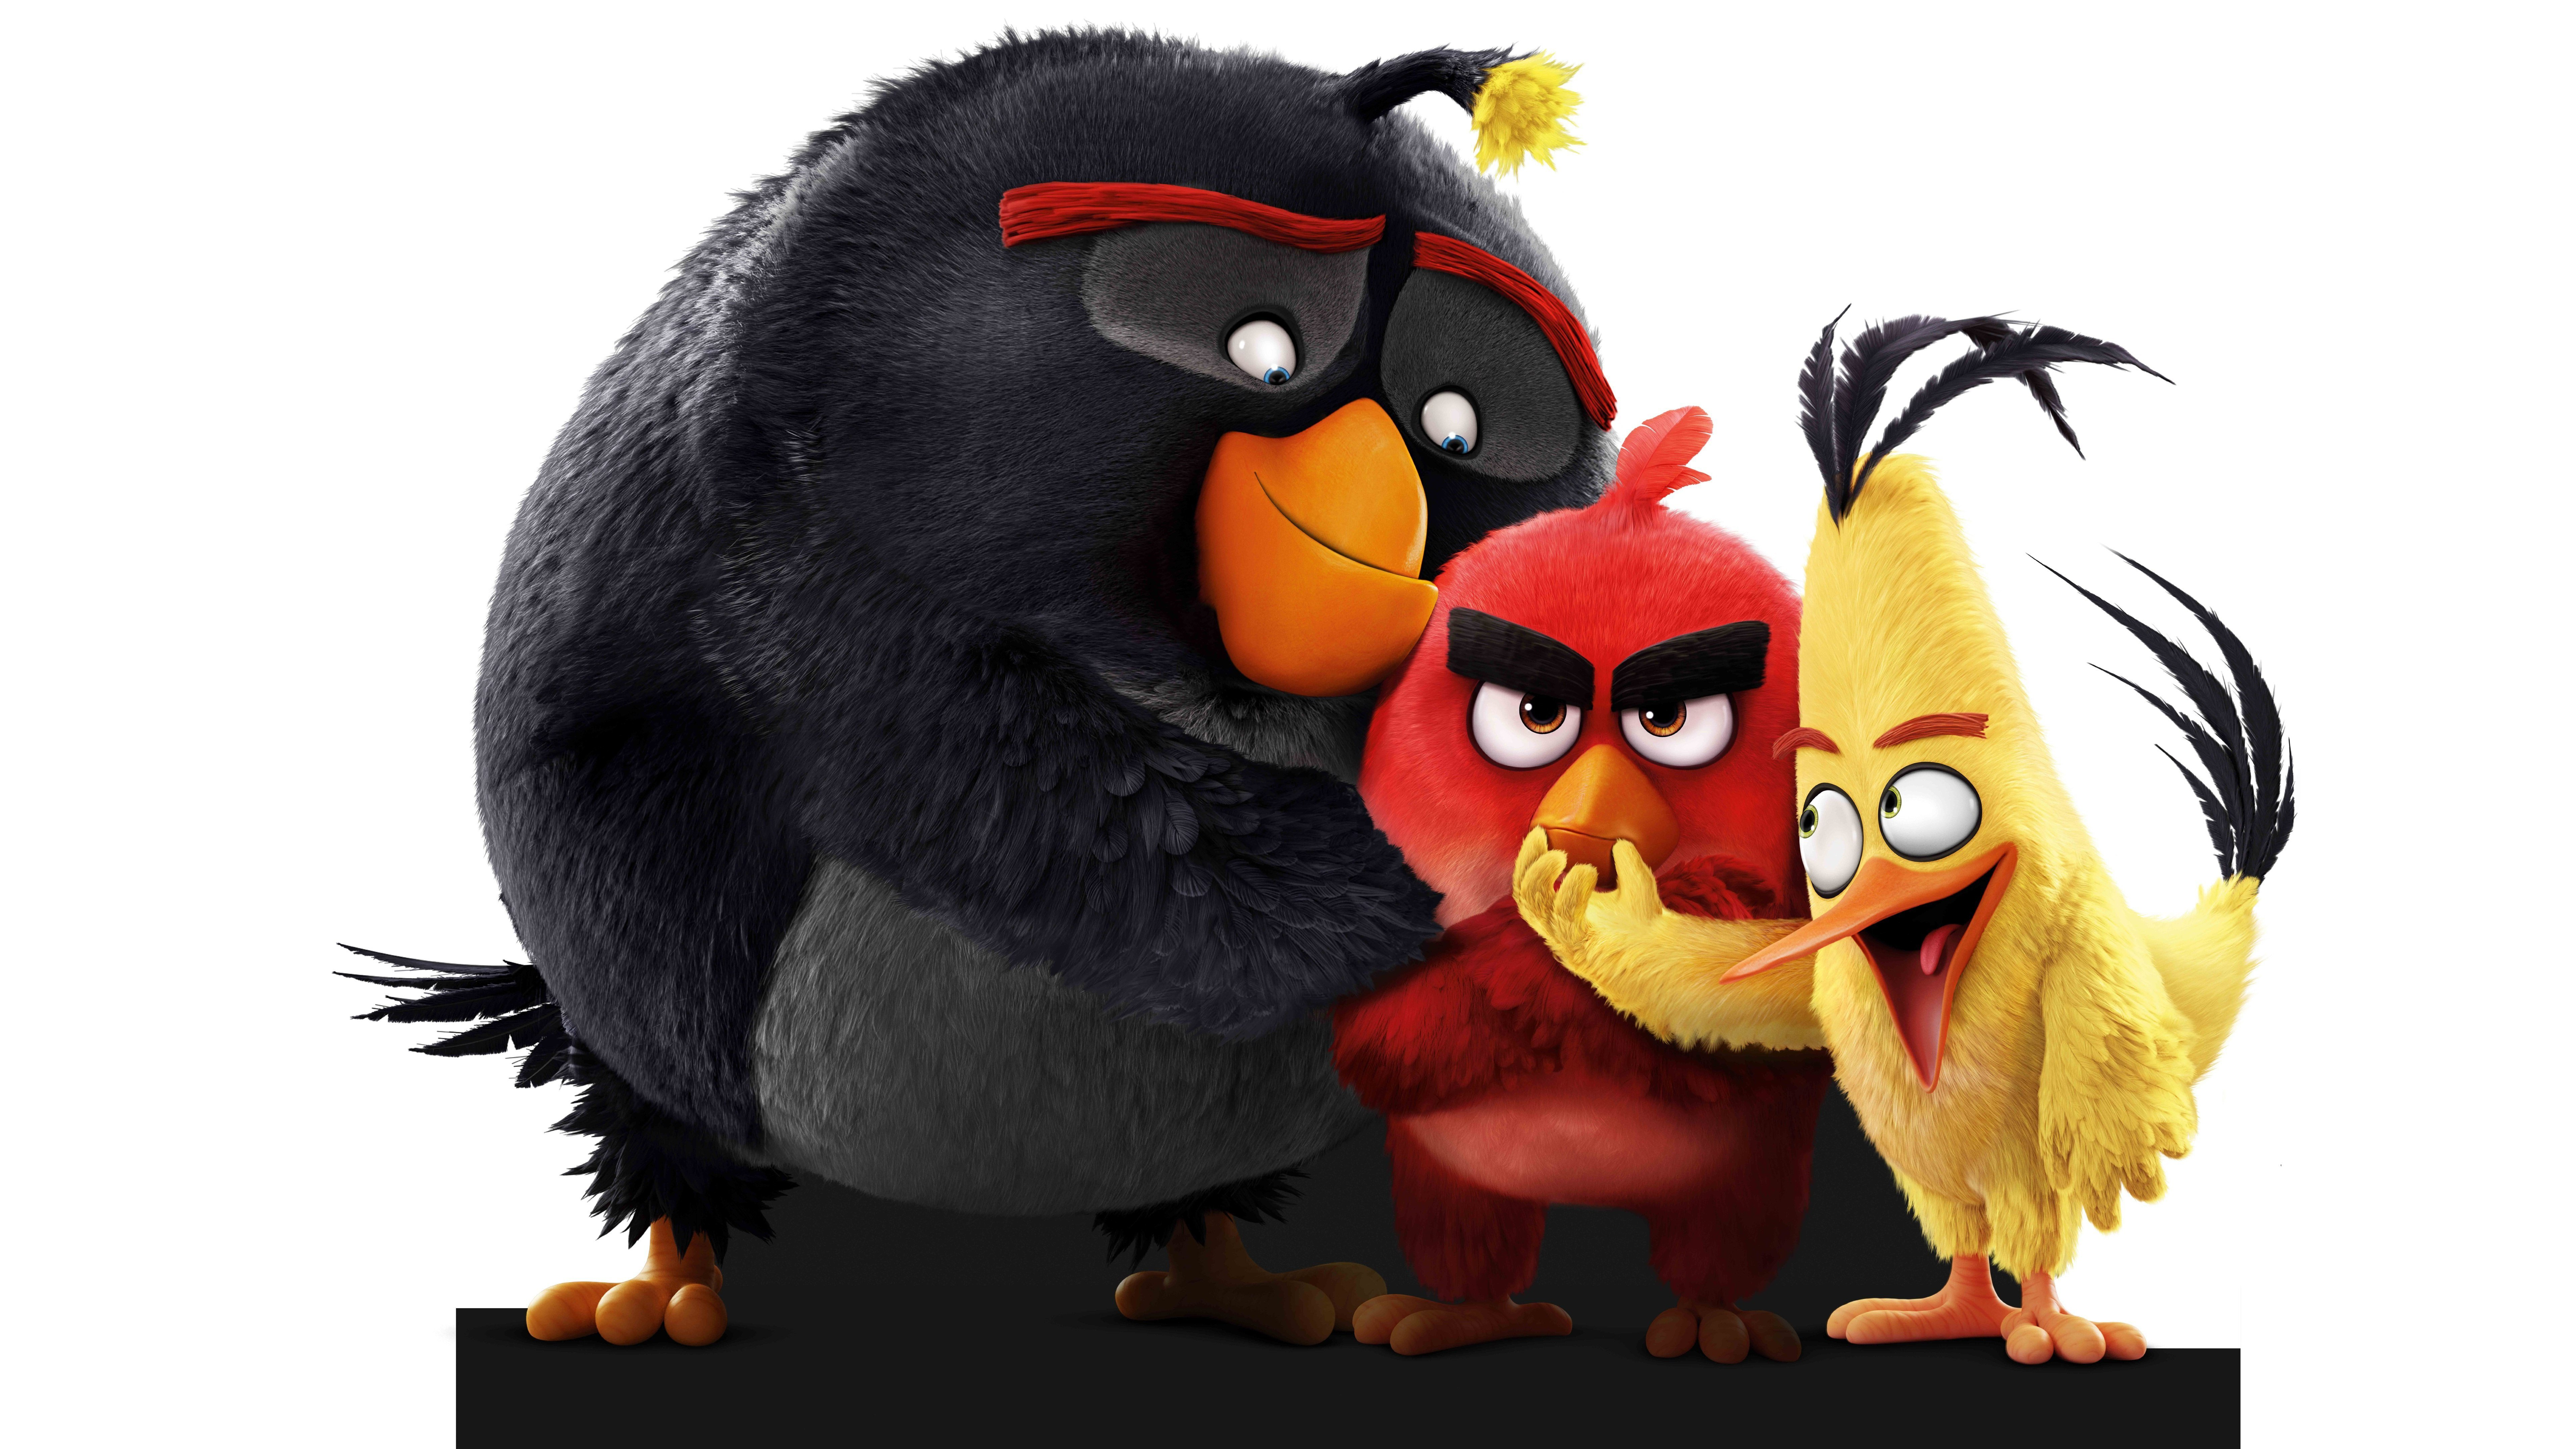 7680x4320 The Angry Birds 8k 8k Hd 4k Wallpapers Images Backgrounds Photos And Pictures